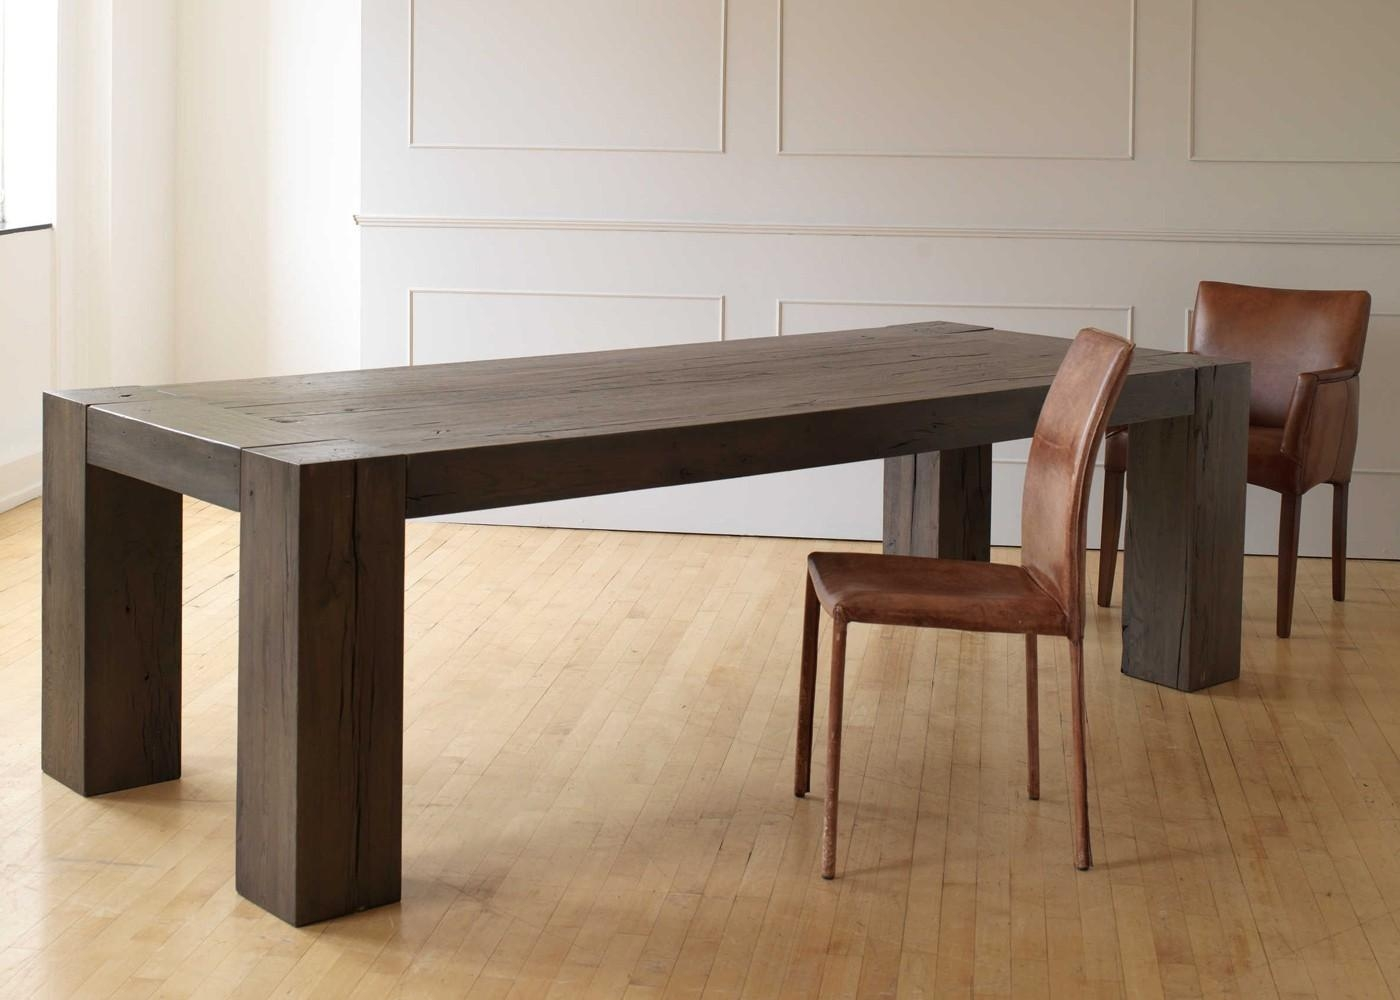 Heal's Umbrian Table Within Dining Table With Sofa Chairs (Image 14 of 20)